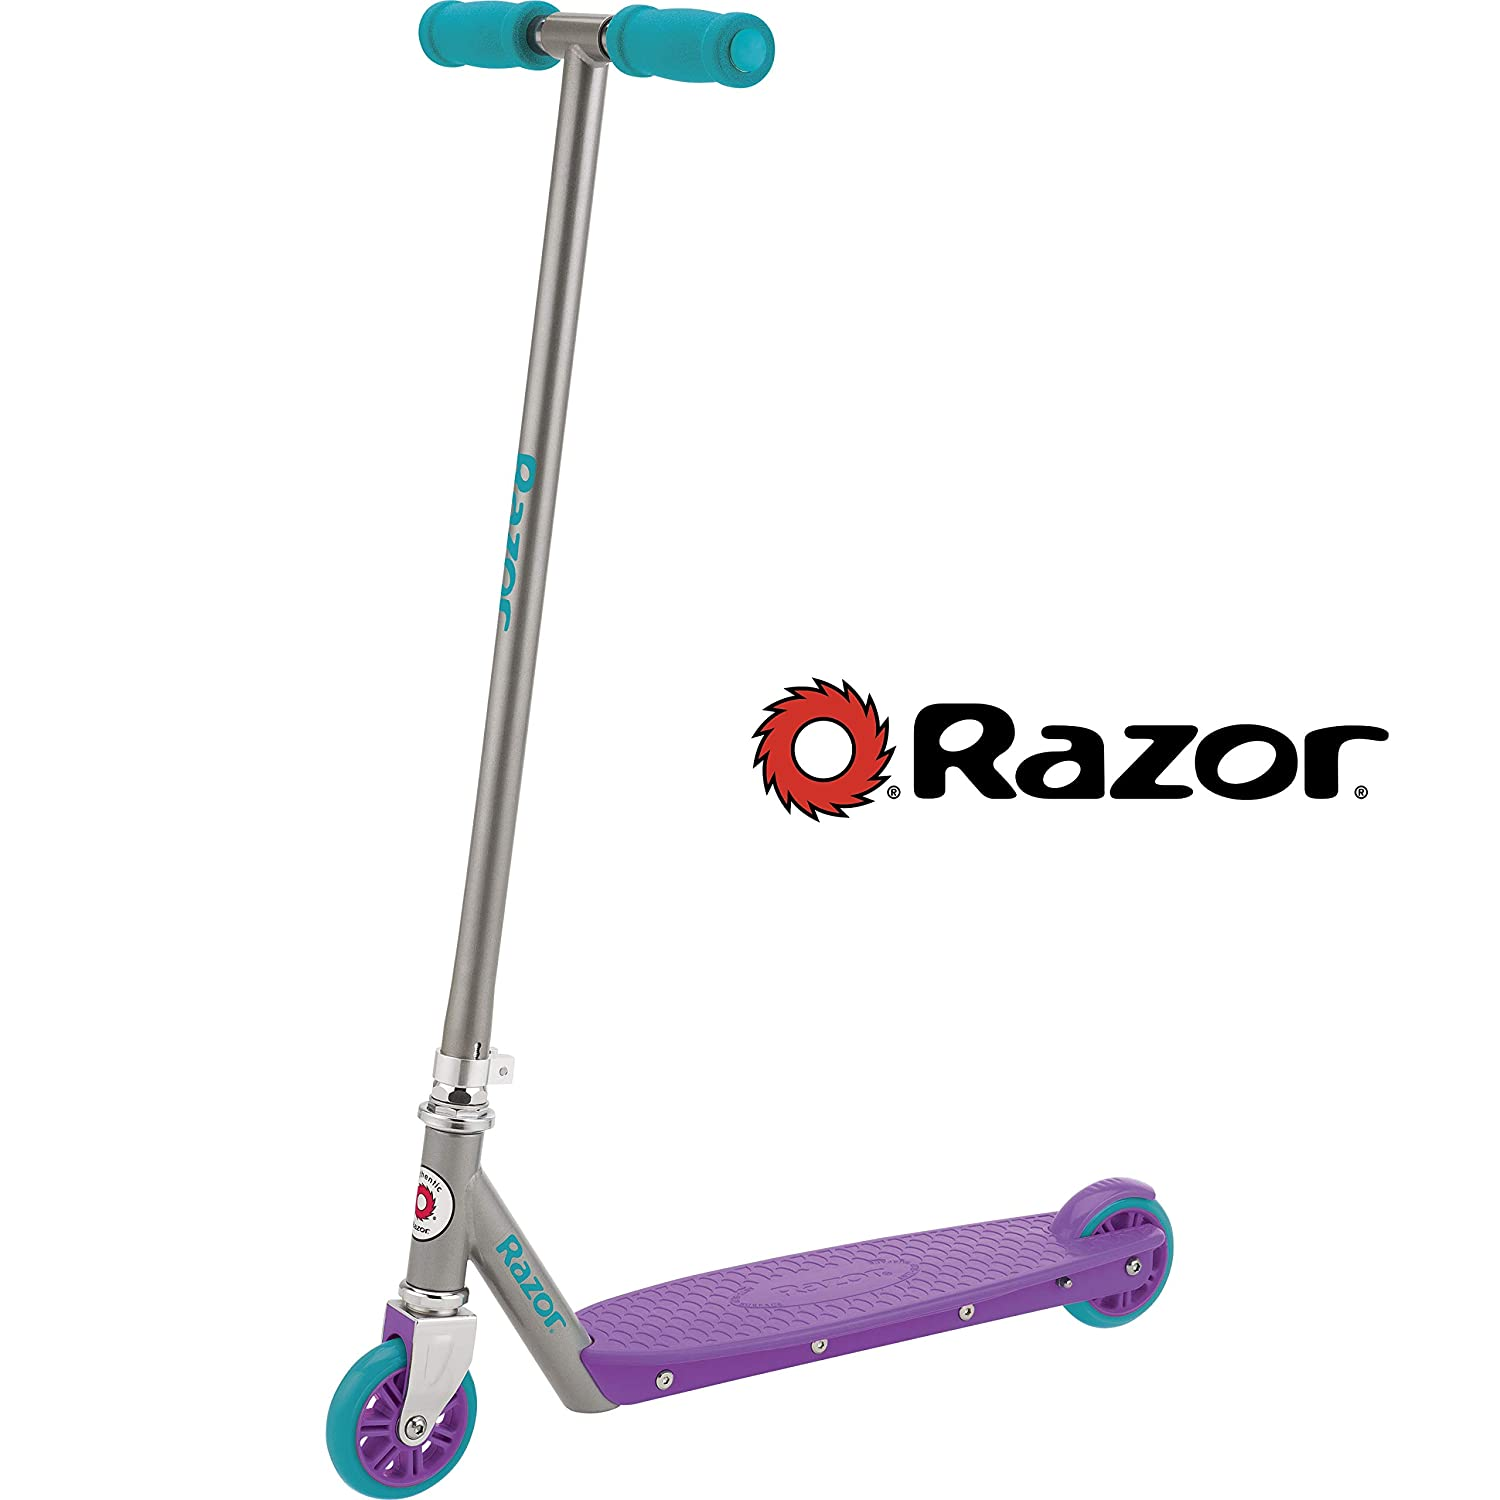 Amazon.com: Razor Berry Kick – Patinete, color morado/azul ...